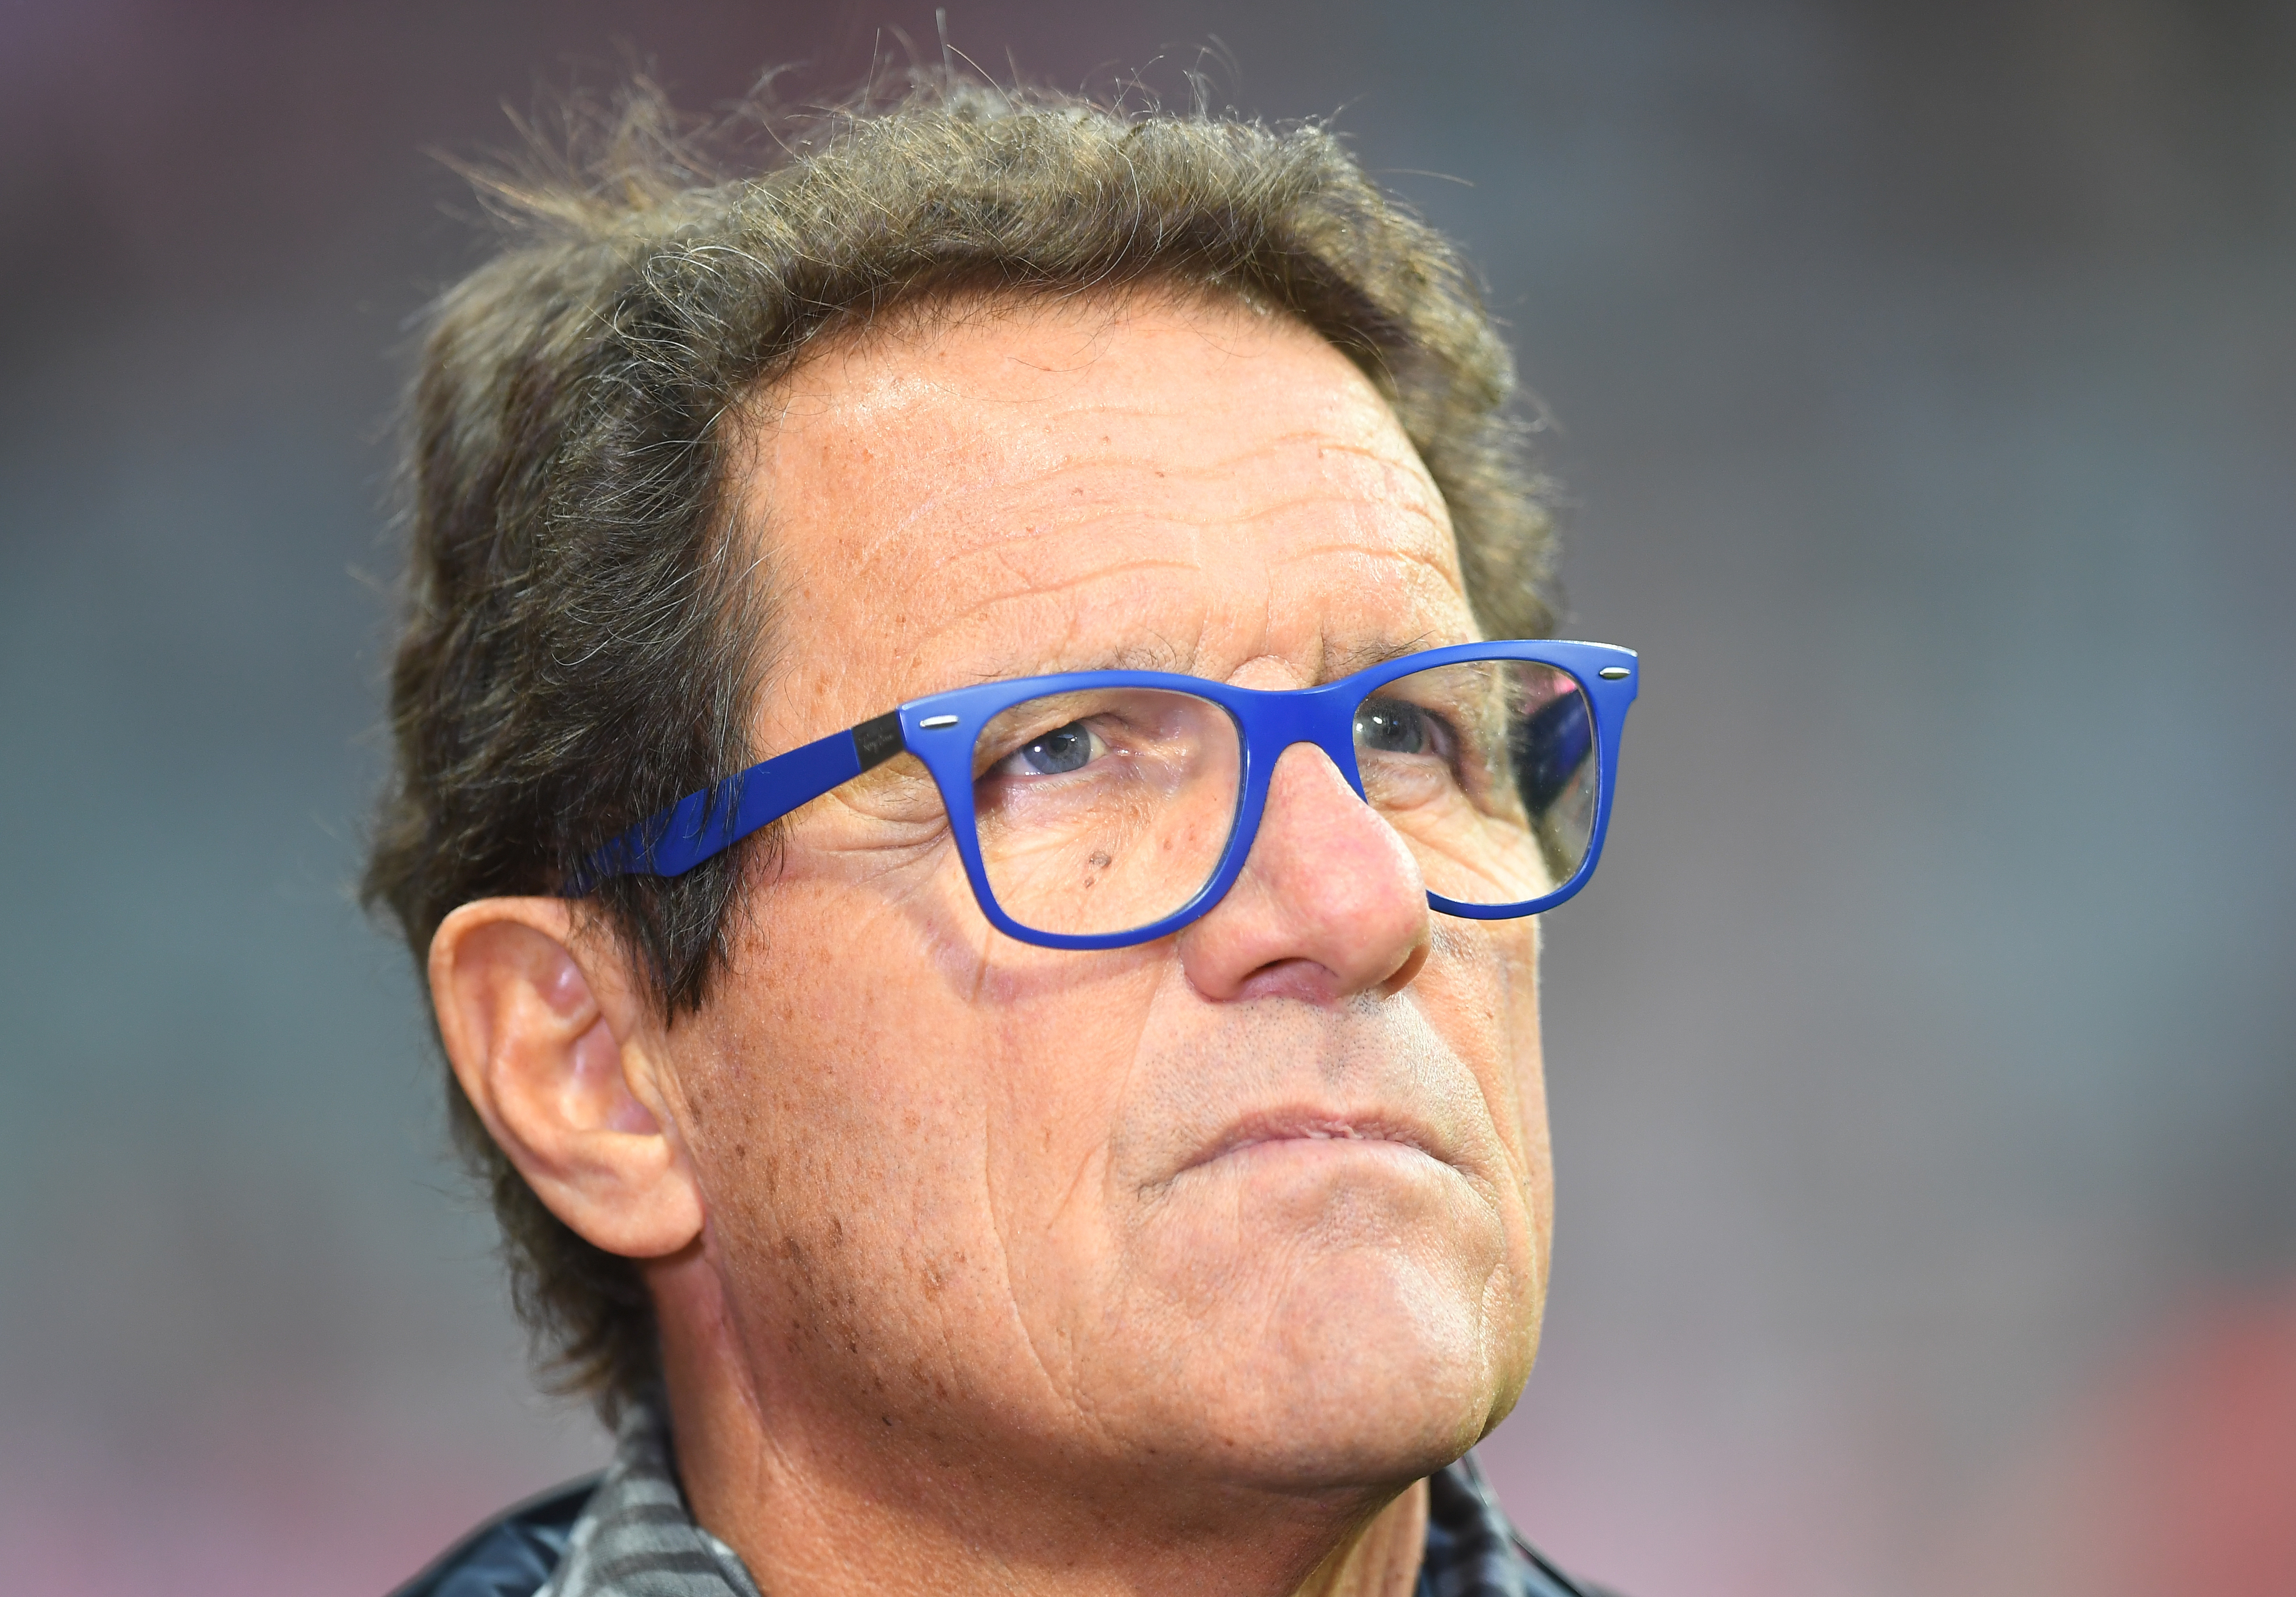 MUNICH, GERMANY - OCTOBER 22:  Former coach Fabio Capello attends the Bundesliga match between FC Bayern Muenchen and Borussia Moenchengladbach at Allianz Arena on October 22, 2016 in Munich, Germany.  (Photo by Lennart Preiss/Bongarts/Getty Images)